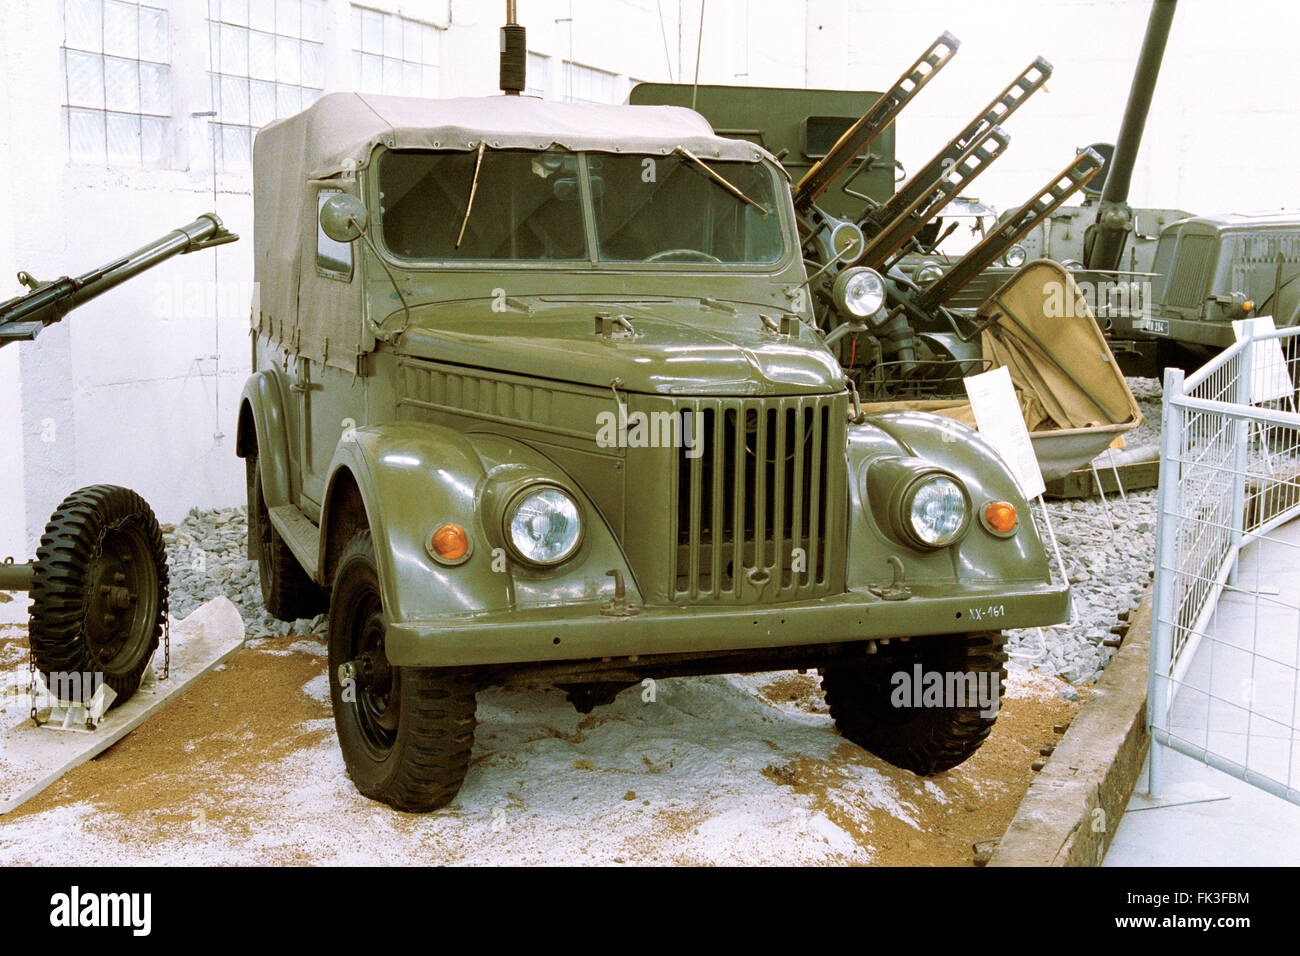 Soviet light truck GAZ-69 produced by the GAZ automobile plant (1957) displayed in the Military Technical Museum - Stock Image